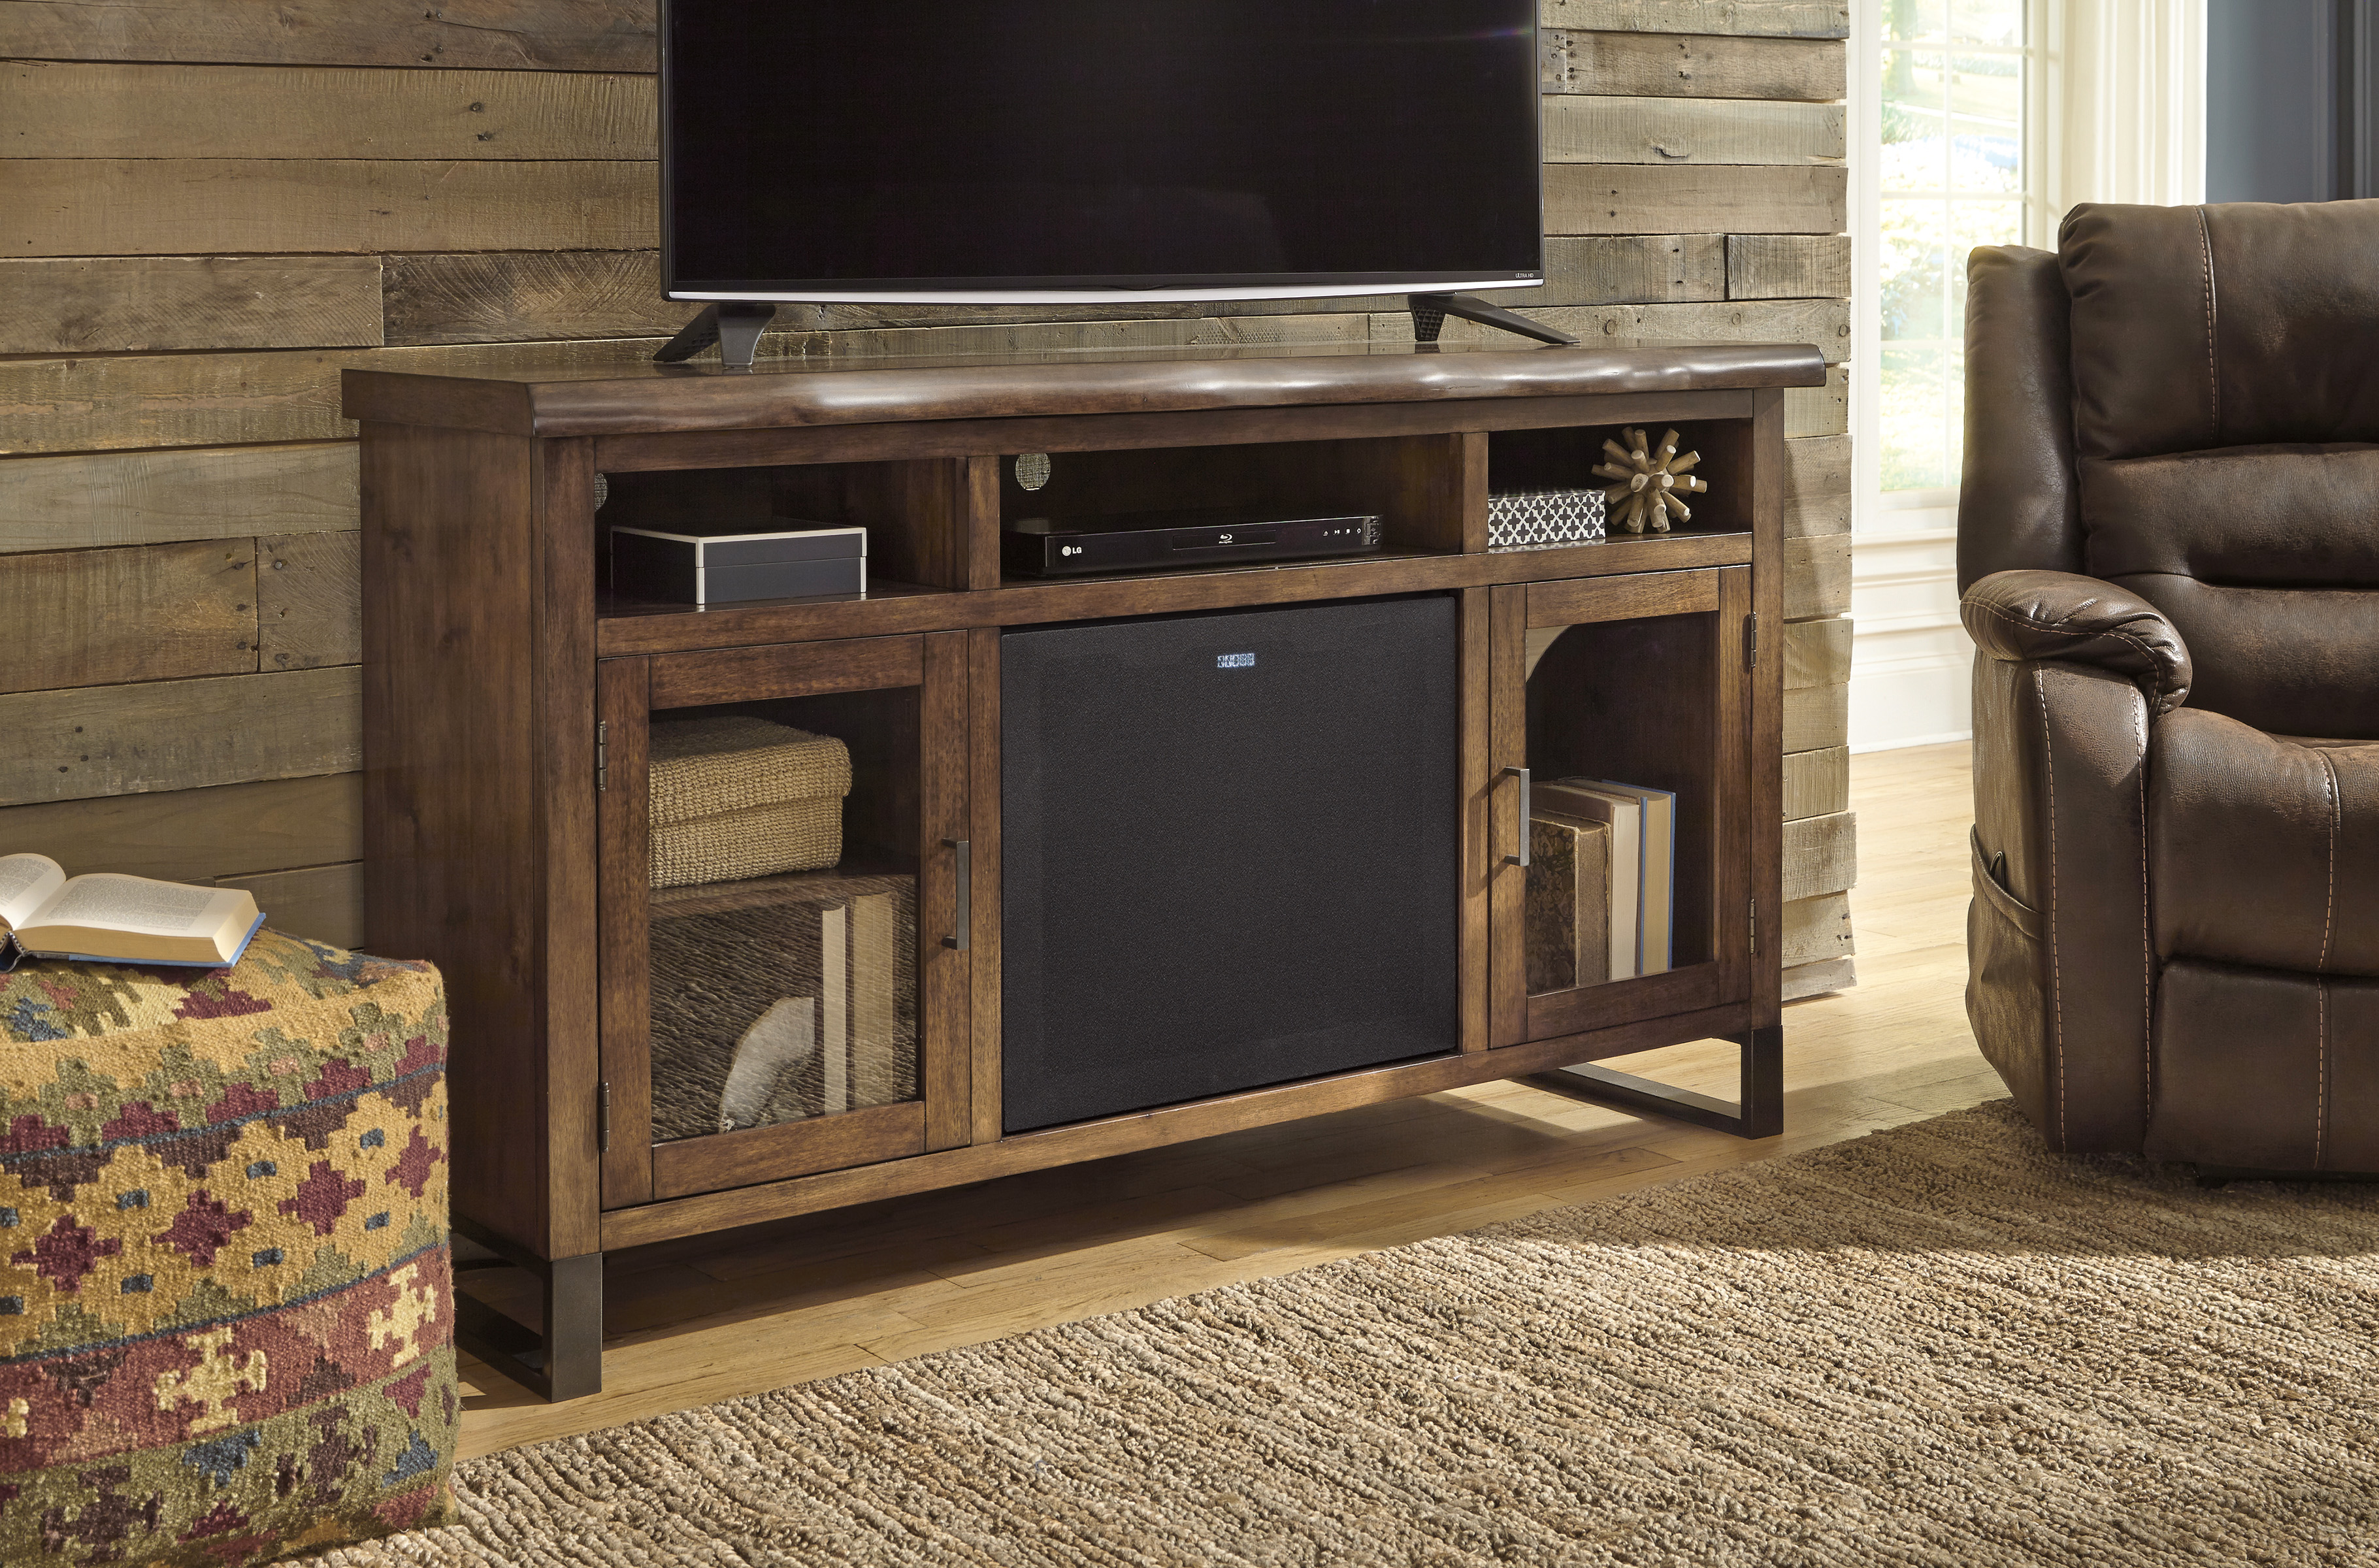 Esmarina Walnut Brown Entertainment Stand  With Large Audio Speaker  / $25.99 A Week